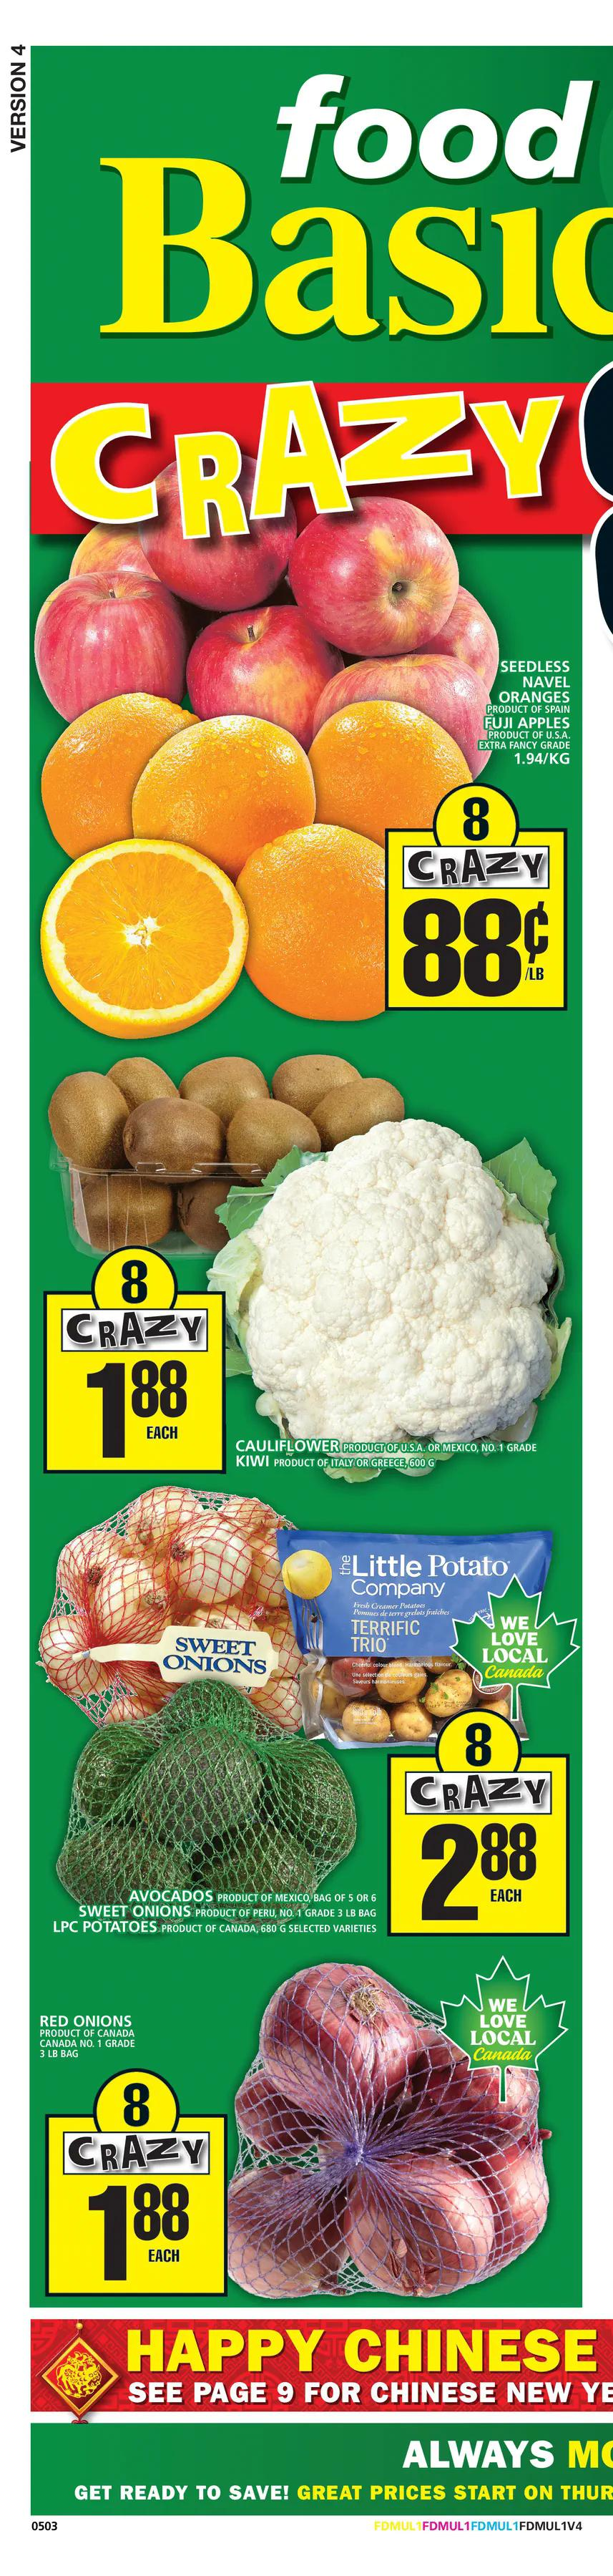 Food Basics - Weekly Flyer Specials - Page 2